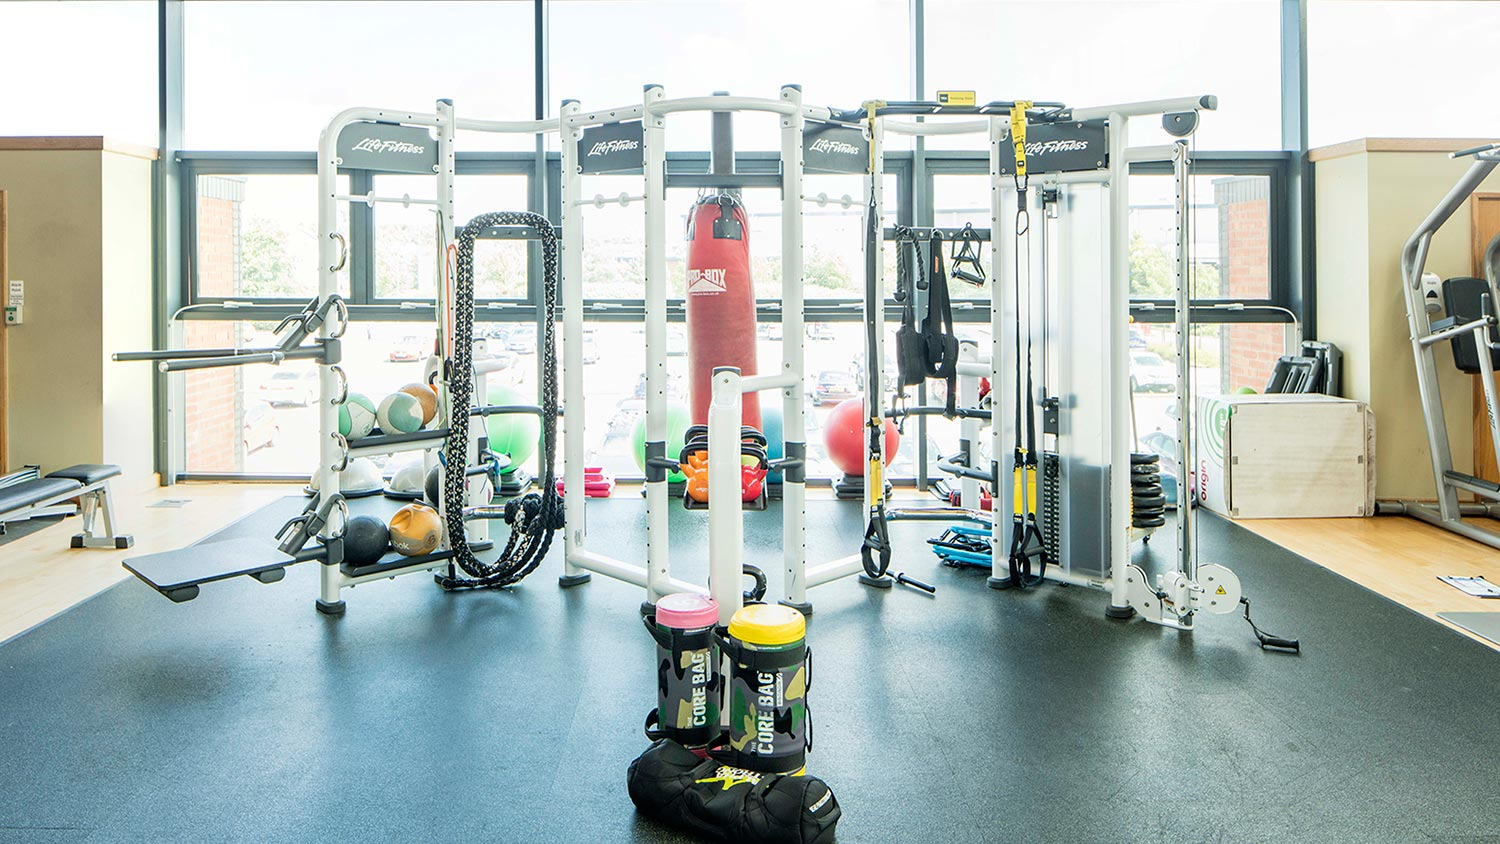 Stoke Fitness & Wellbeing Gym